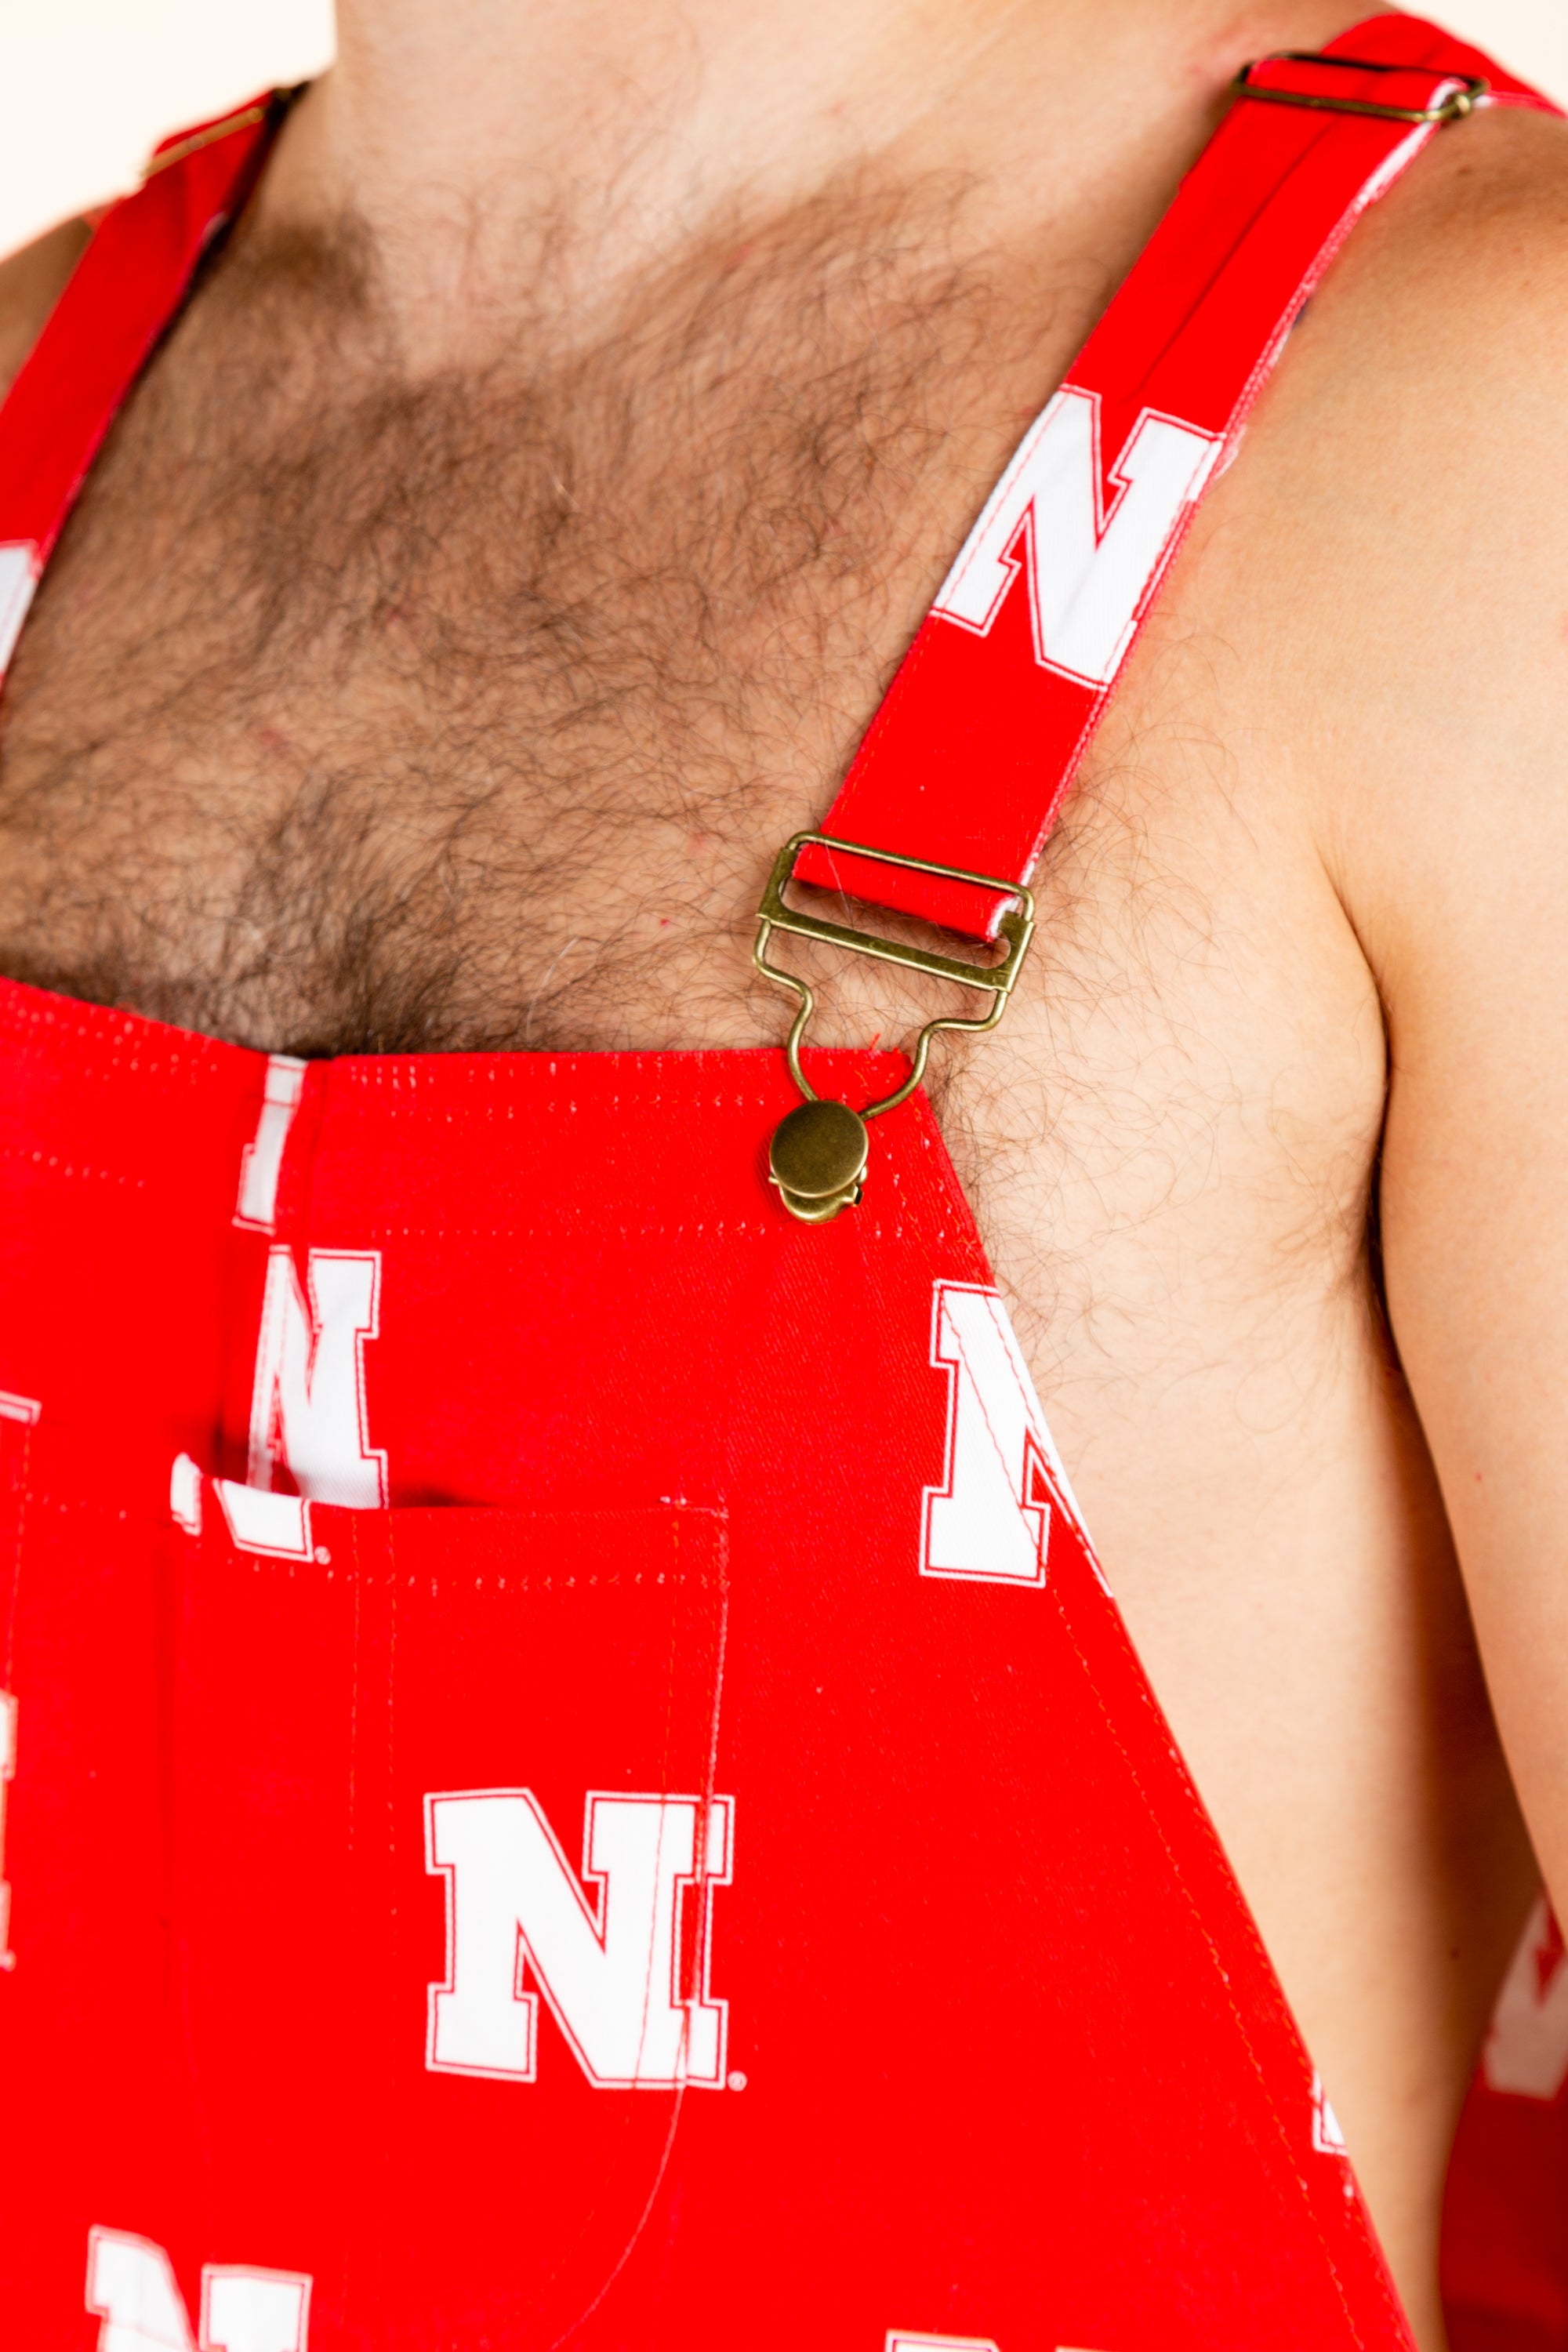 Nebraska print college football overalls